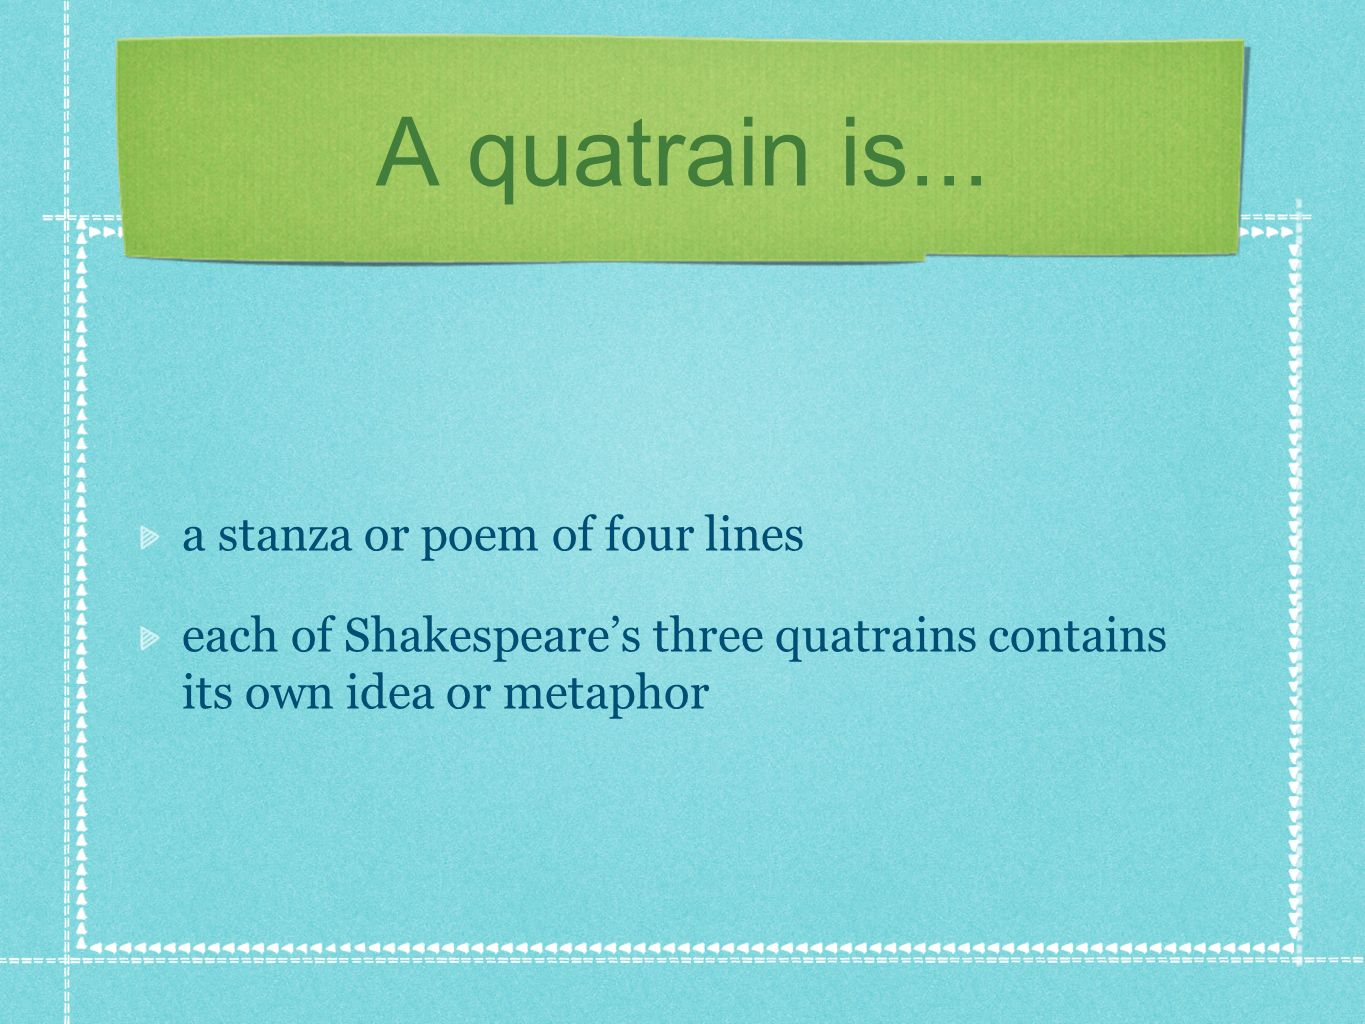 A quatrain is... a stanza or poem of four lines each of Shakespeares three quatrains contains its own idea or metaphor